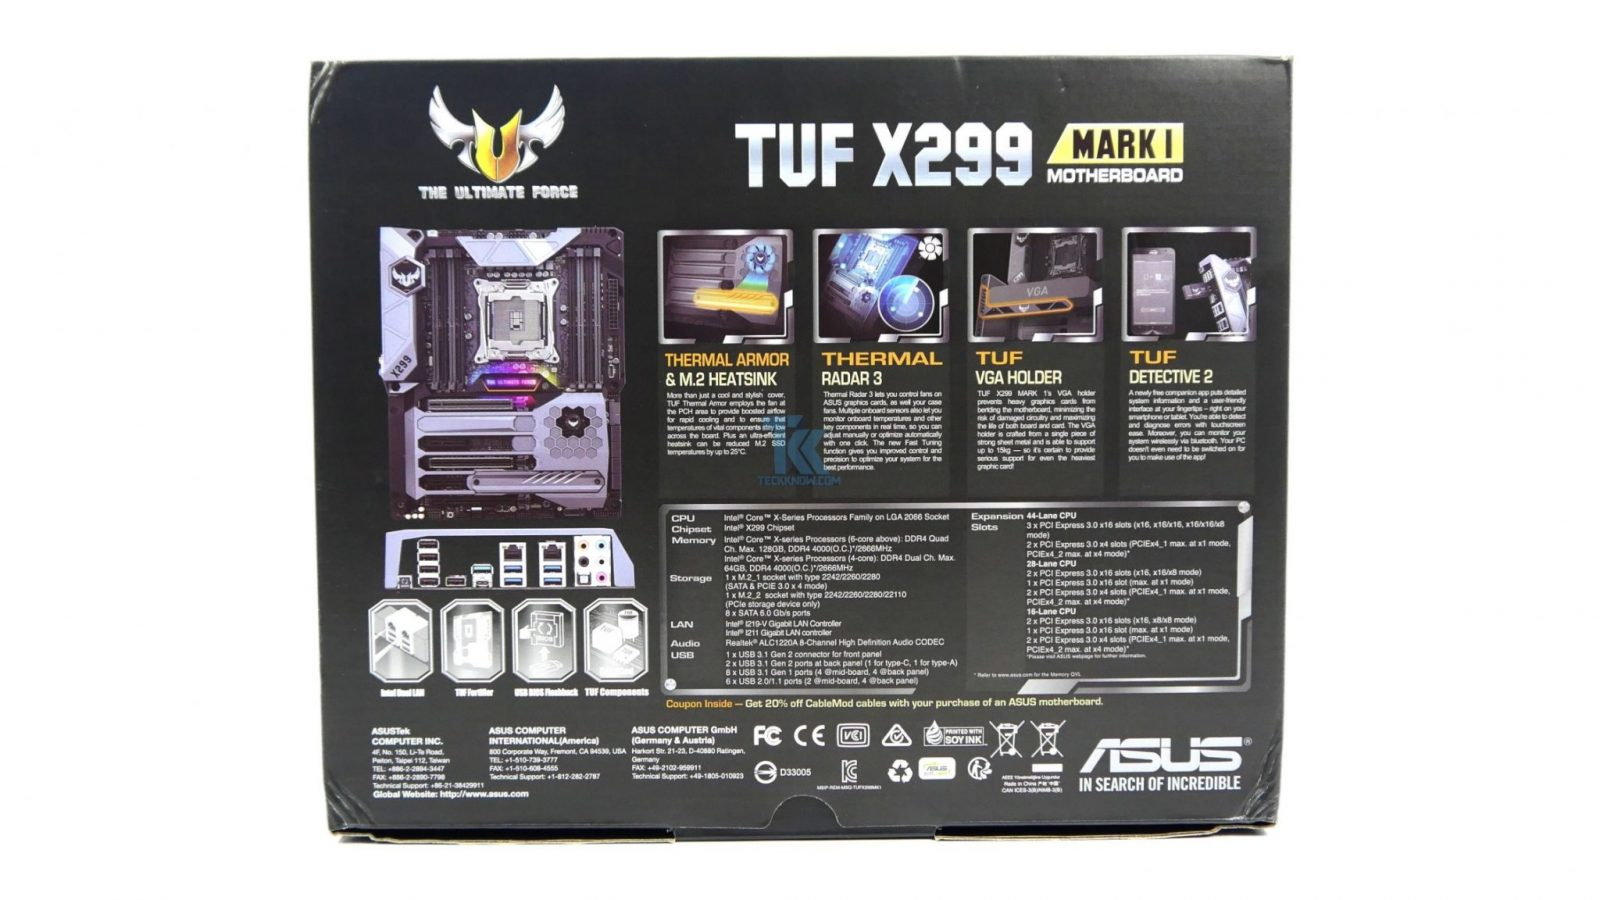 Asus Tuf X299 Mark 1 Motherboard Review